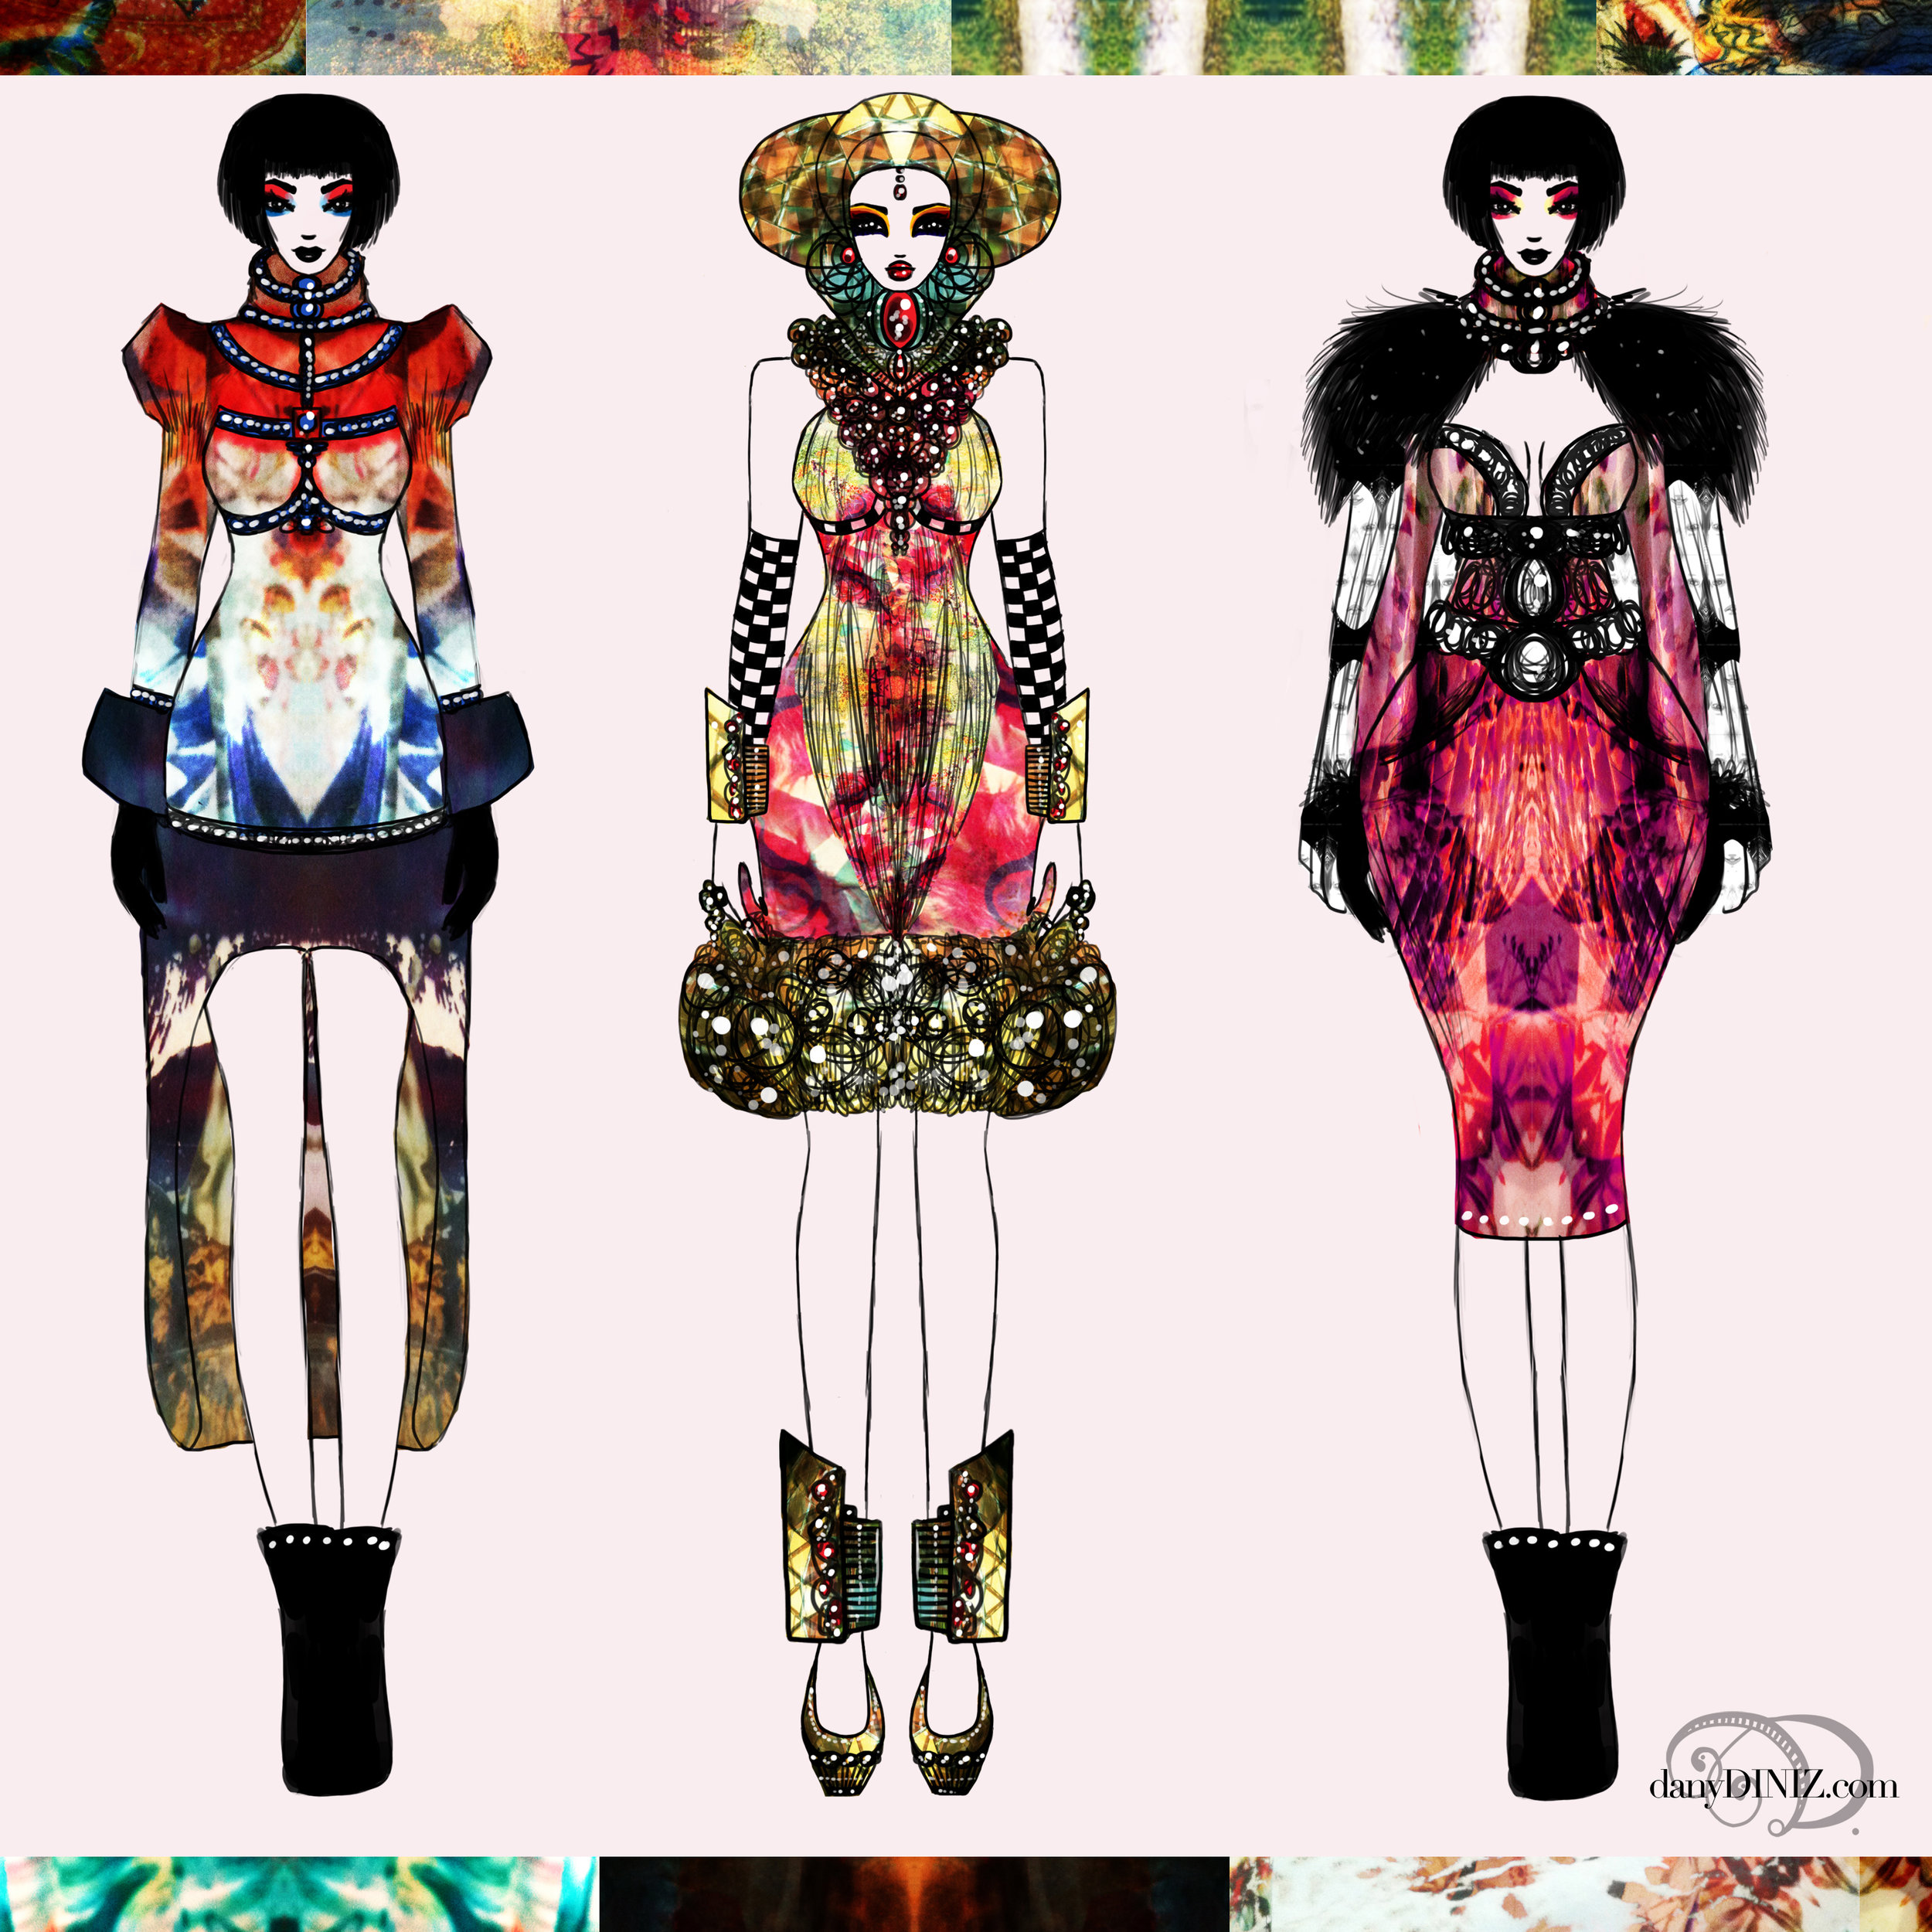 FASHION AND TEXTURE